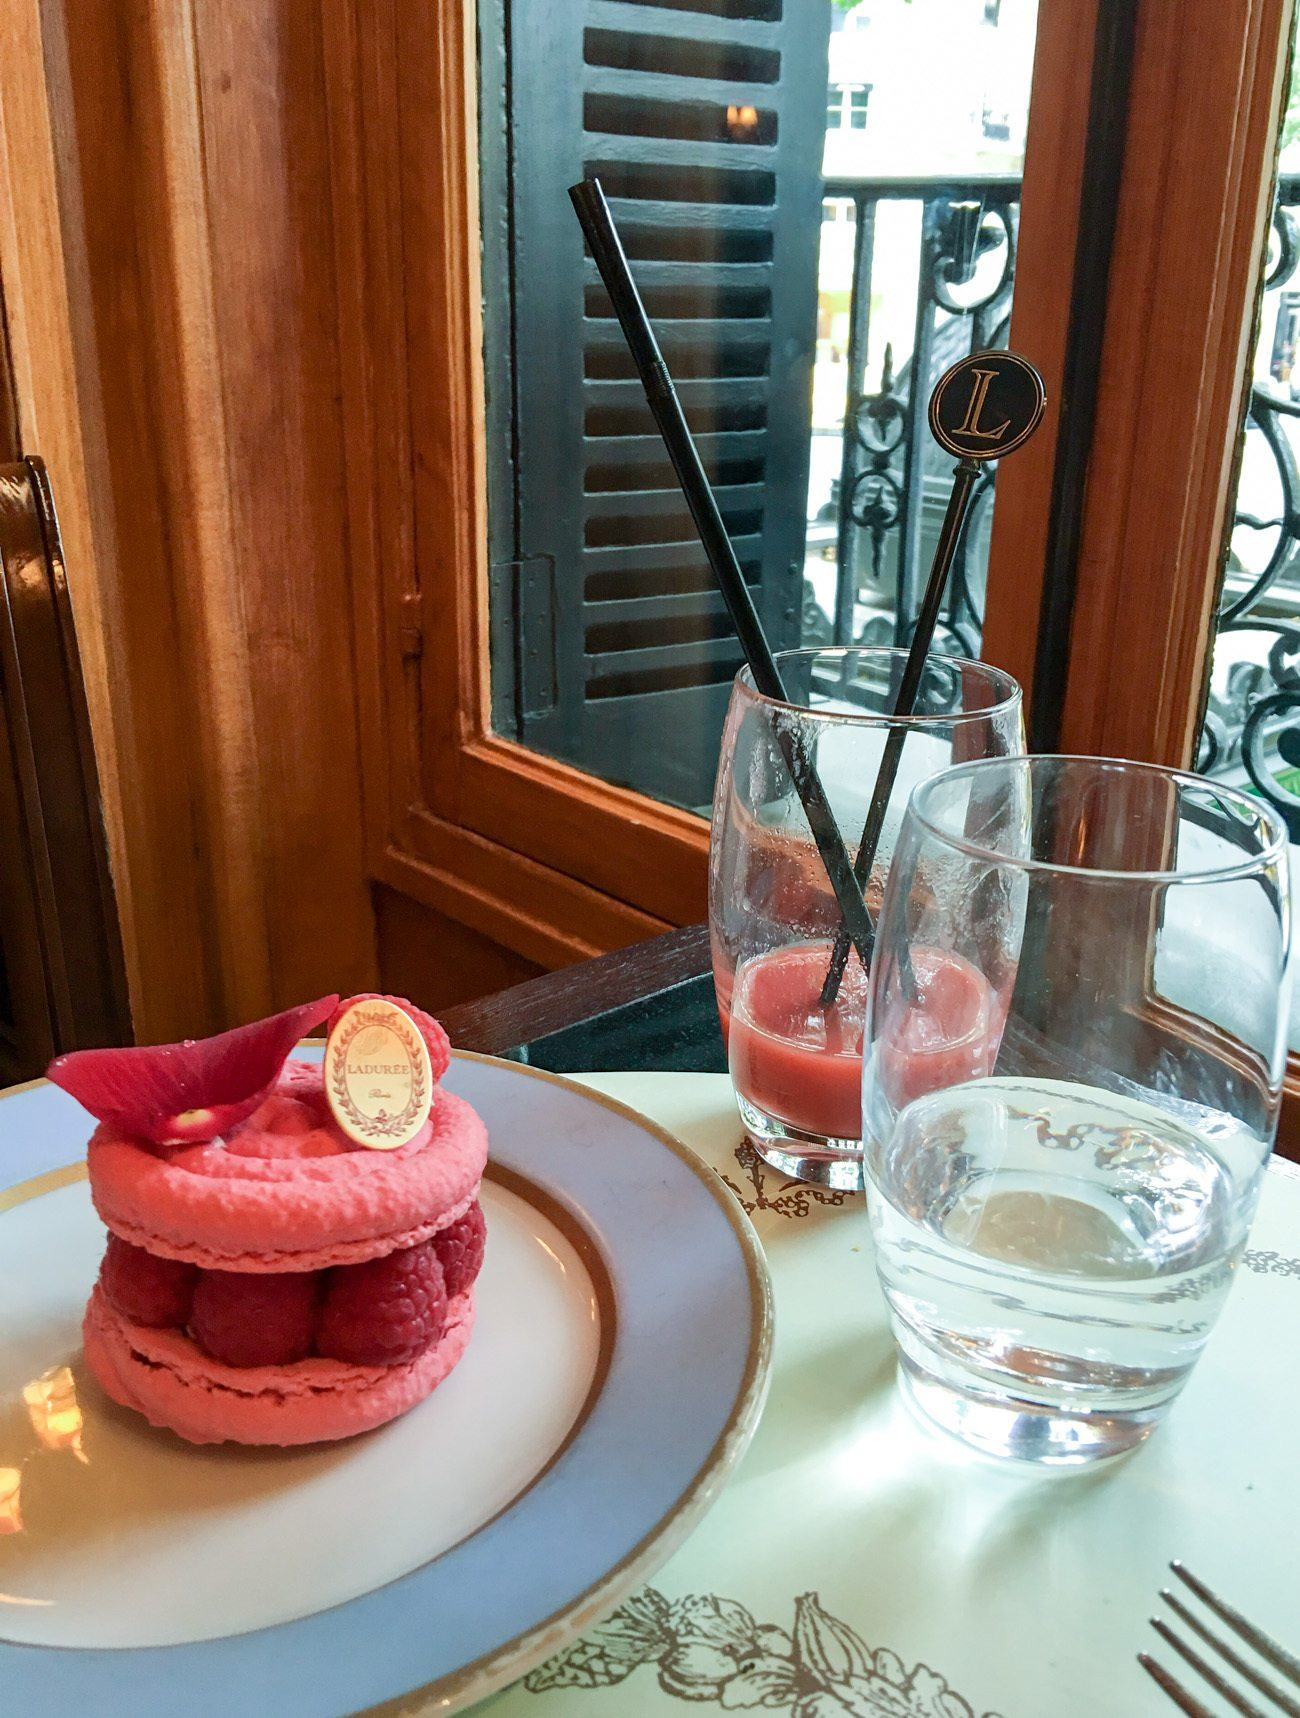 Reasons to Dine at this Ladurée Tea Salon in Paris - La